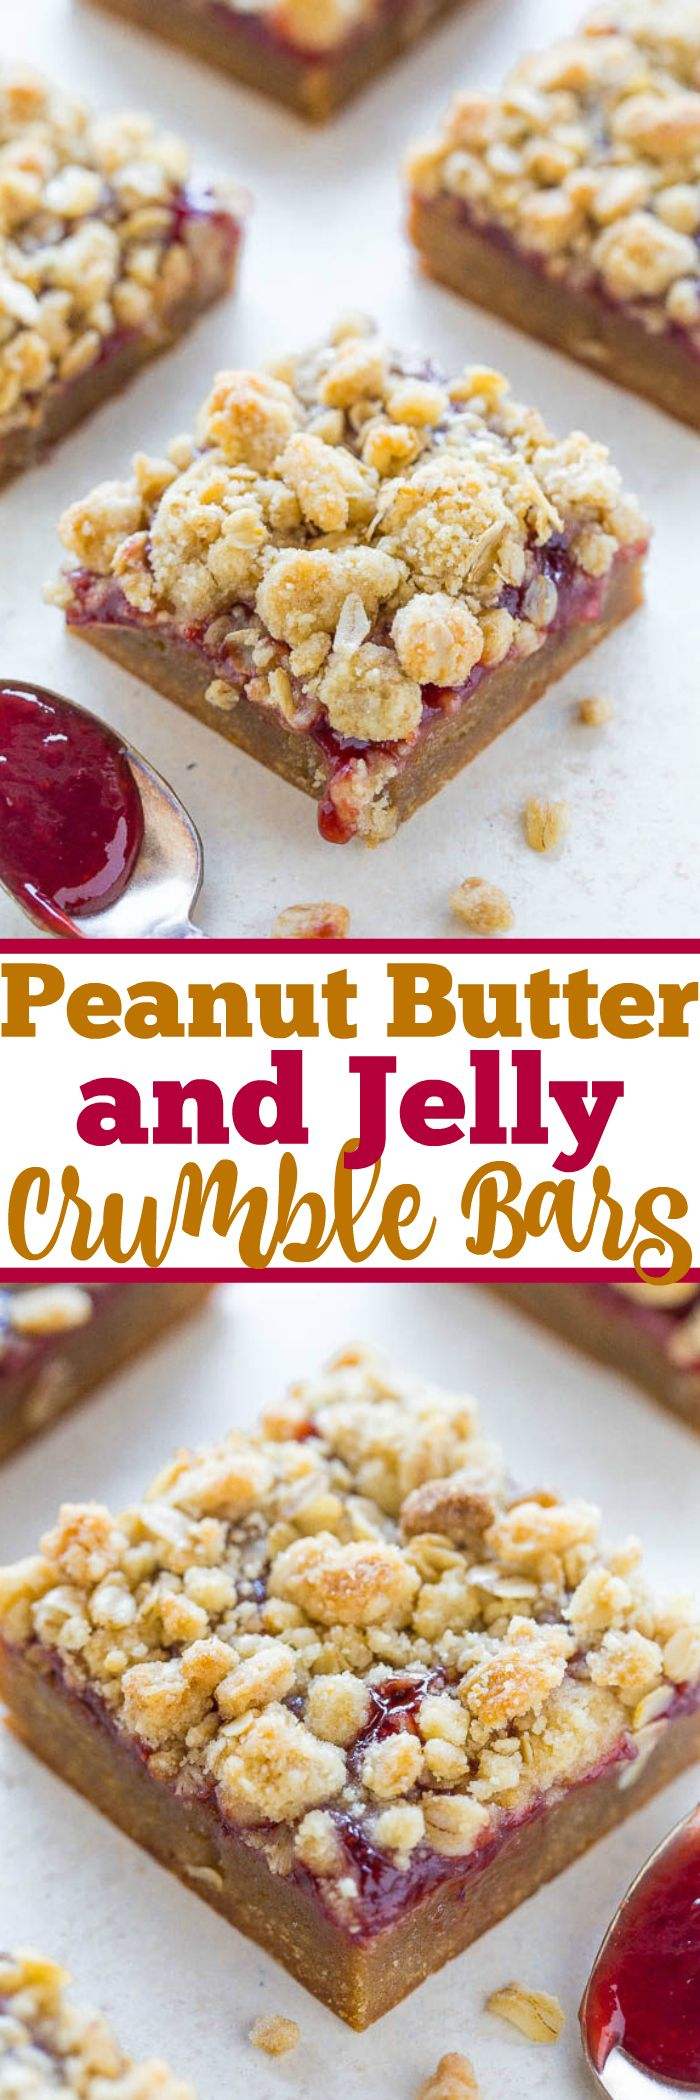 Peanut Butter and Jelly Crumble Bars - Soft and chewy PEANUT BUTTERY bars topped with strawberry jelly and a crispy oatmeal crumble topping!! Easy, no-mixer recipe that'll be your new FAVORITE way to eat PB&J!!